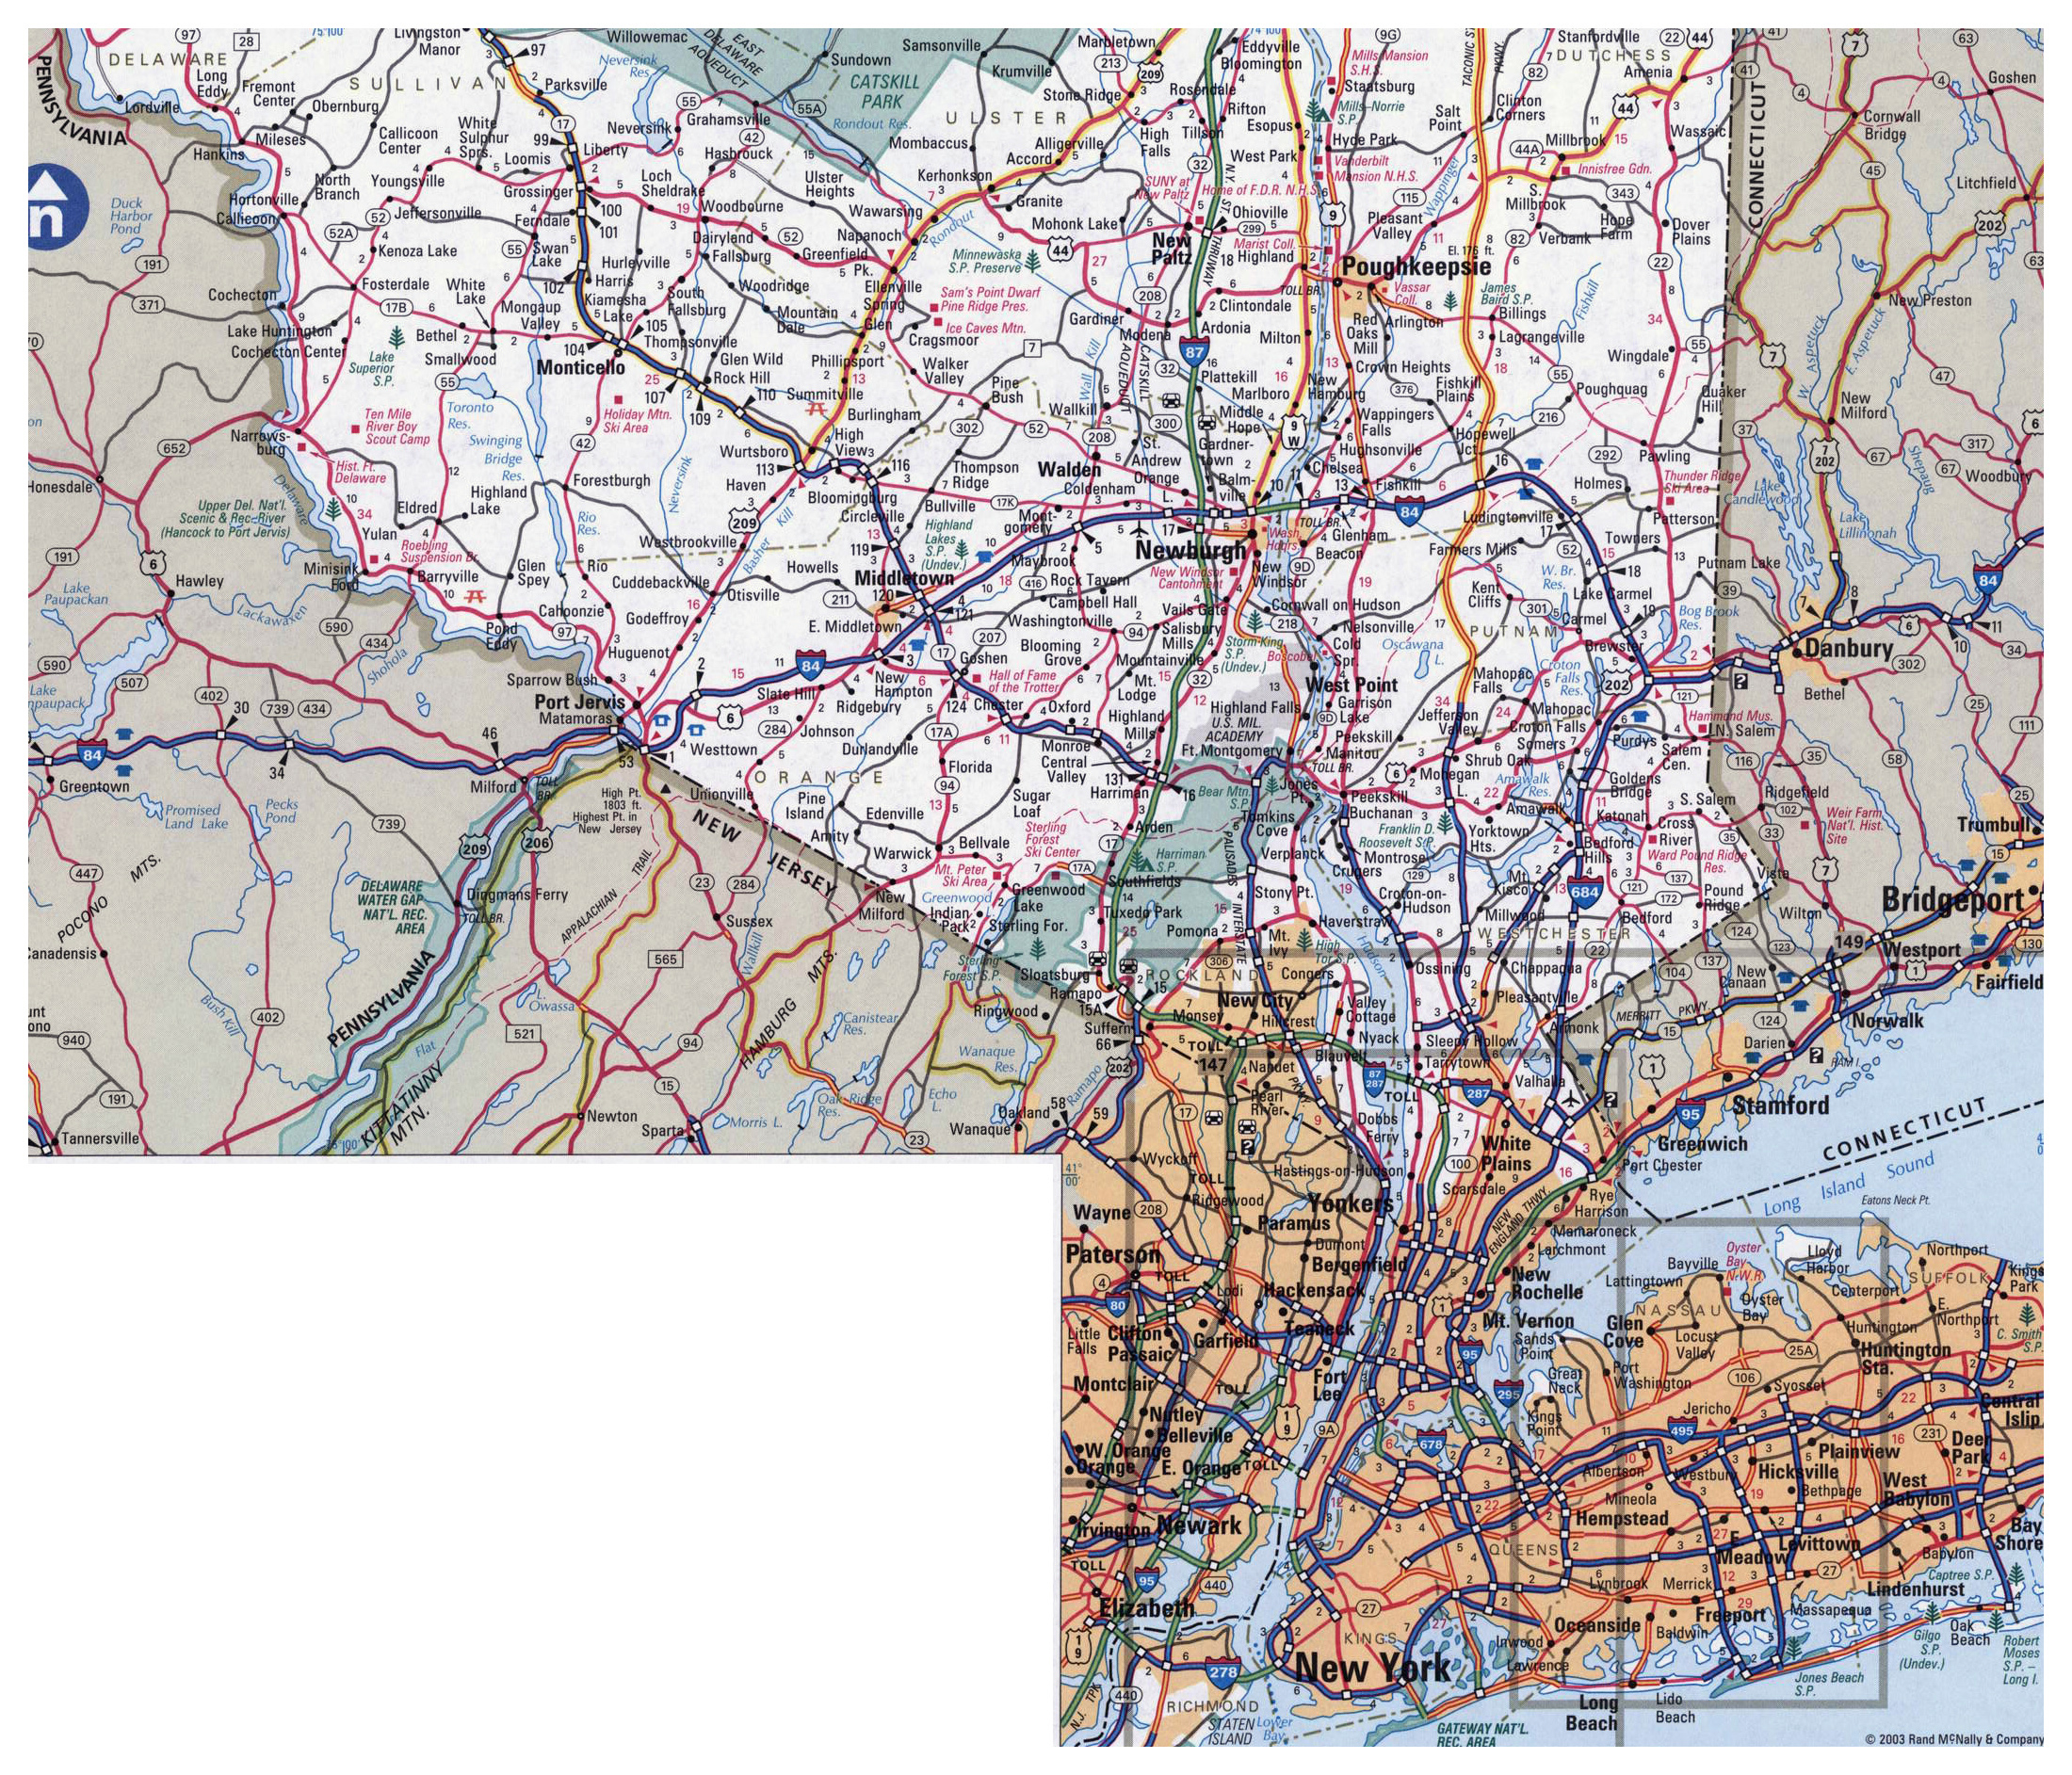 New York Maps PerryCastañeda Map Collection UT Library Online - Nyc map by area